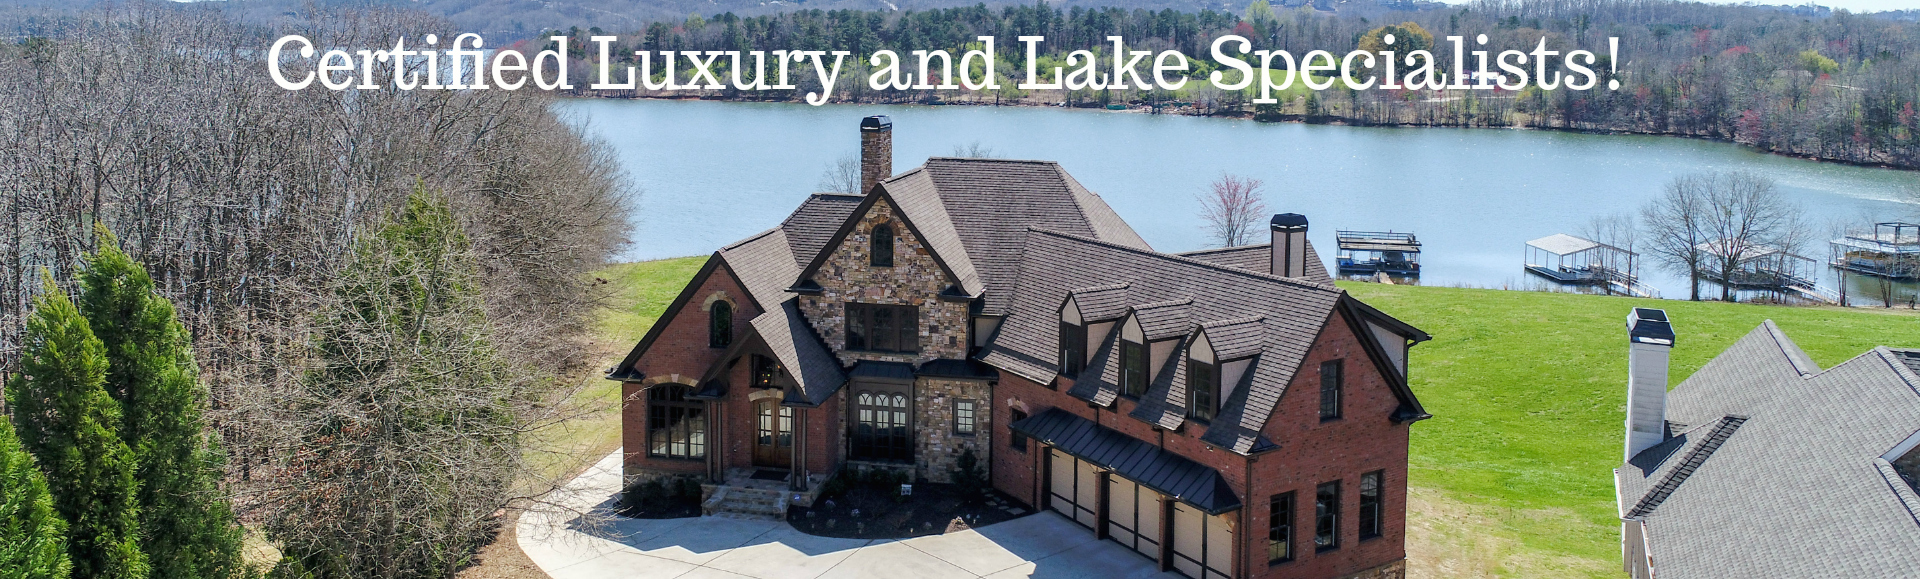 z5 certified luxury and lake